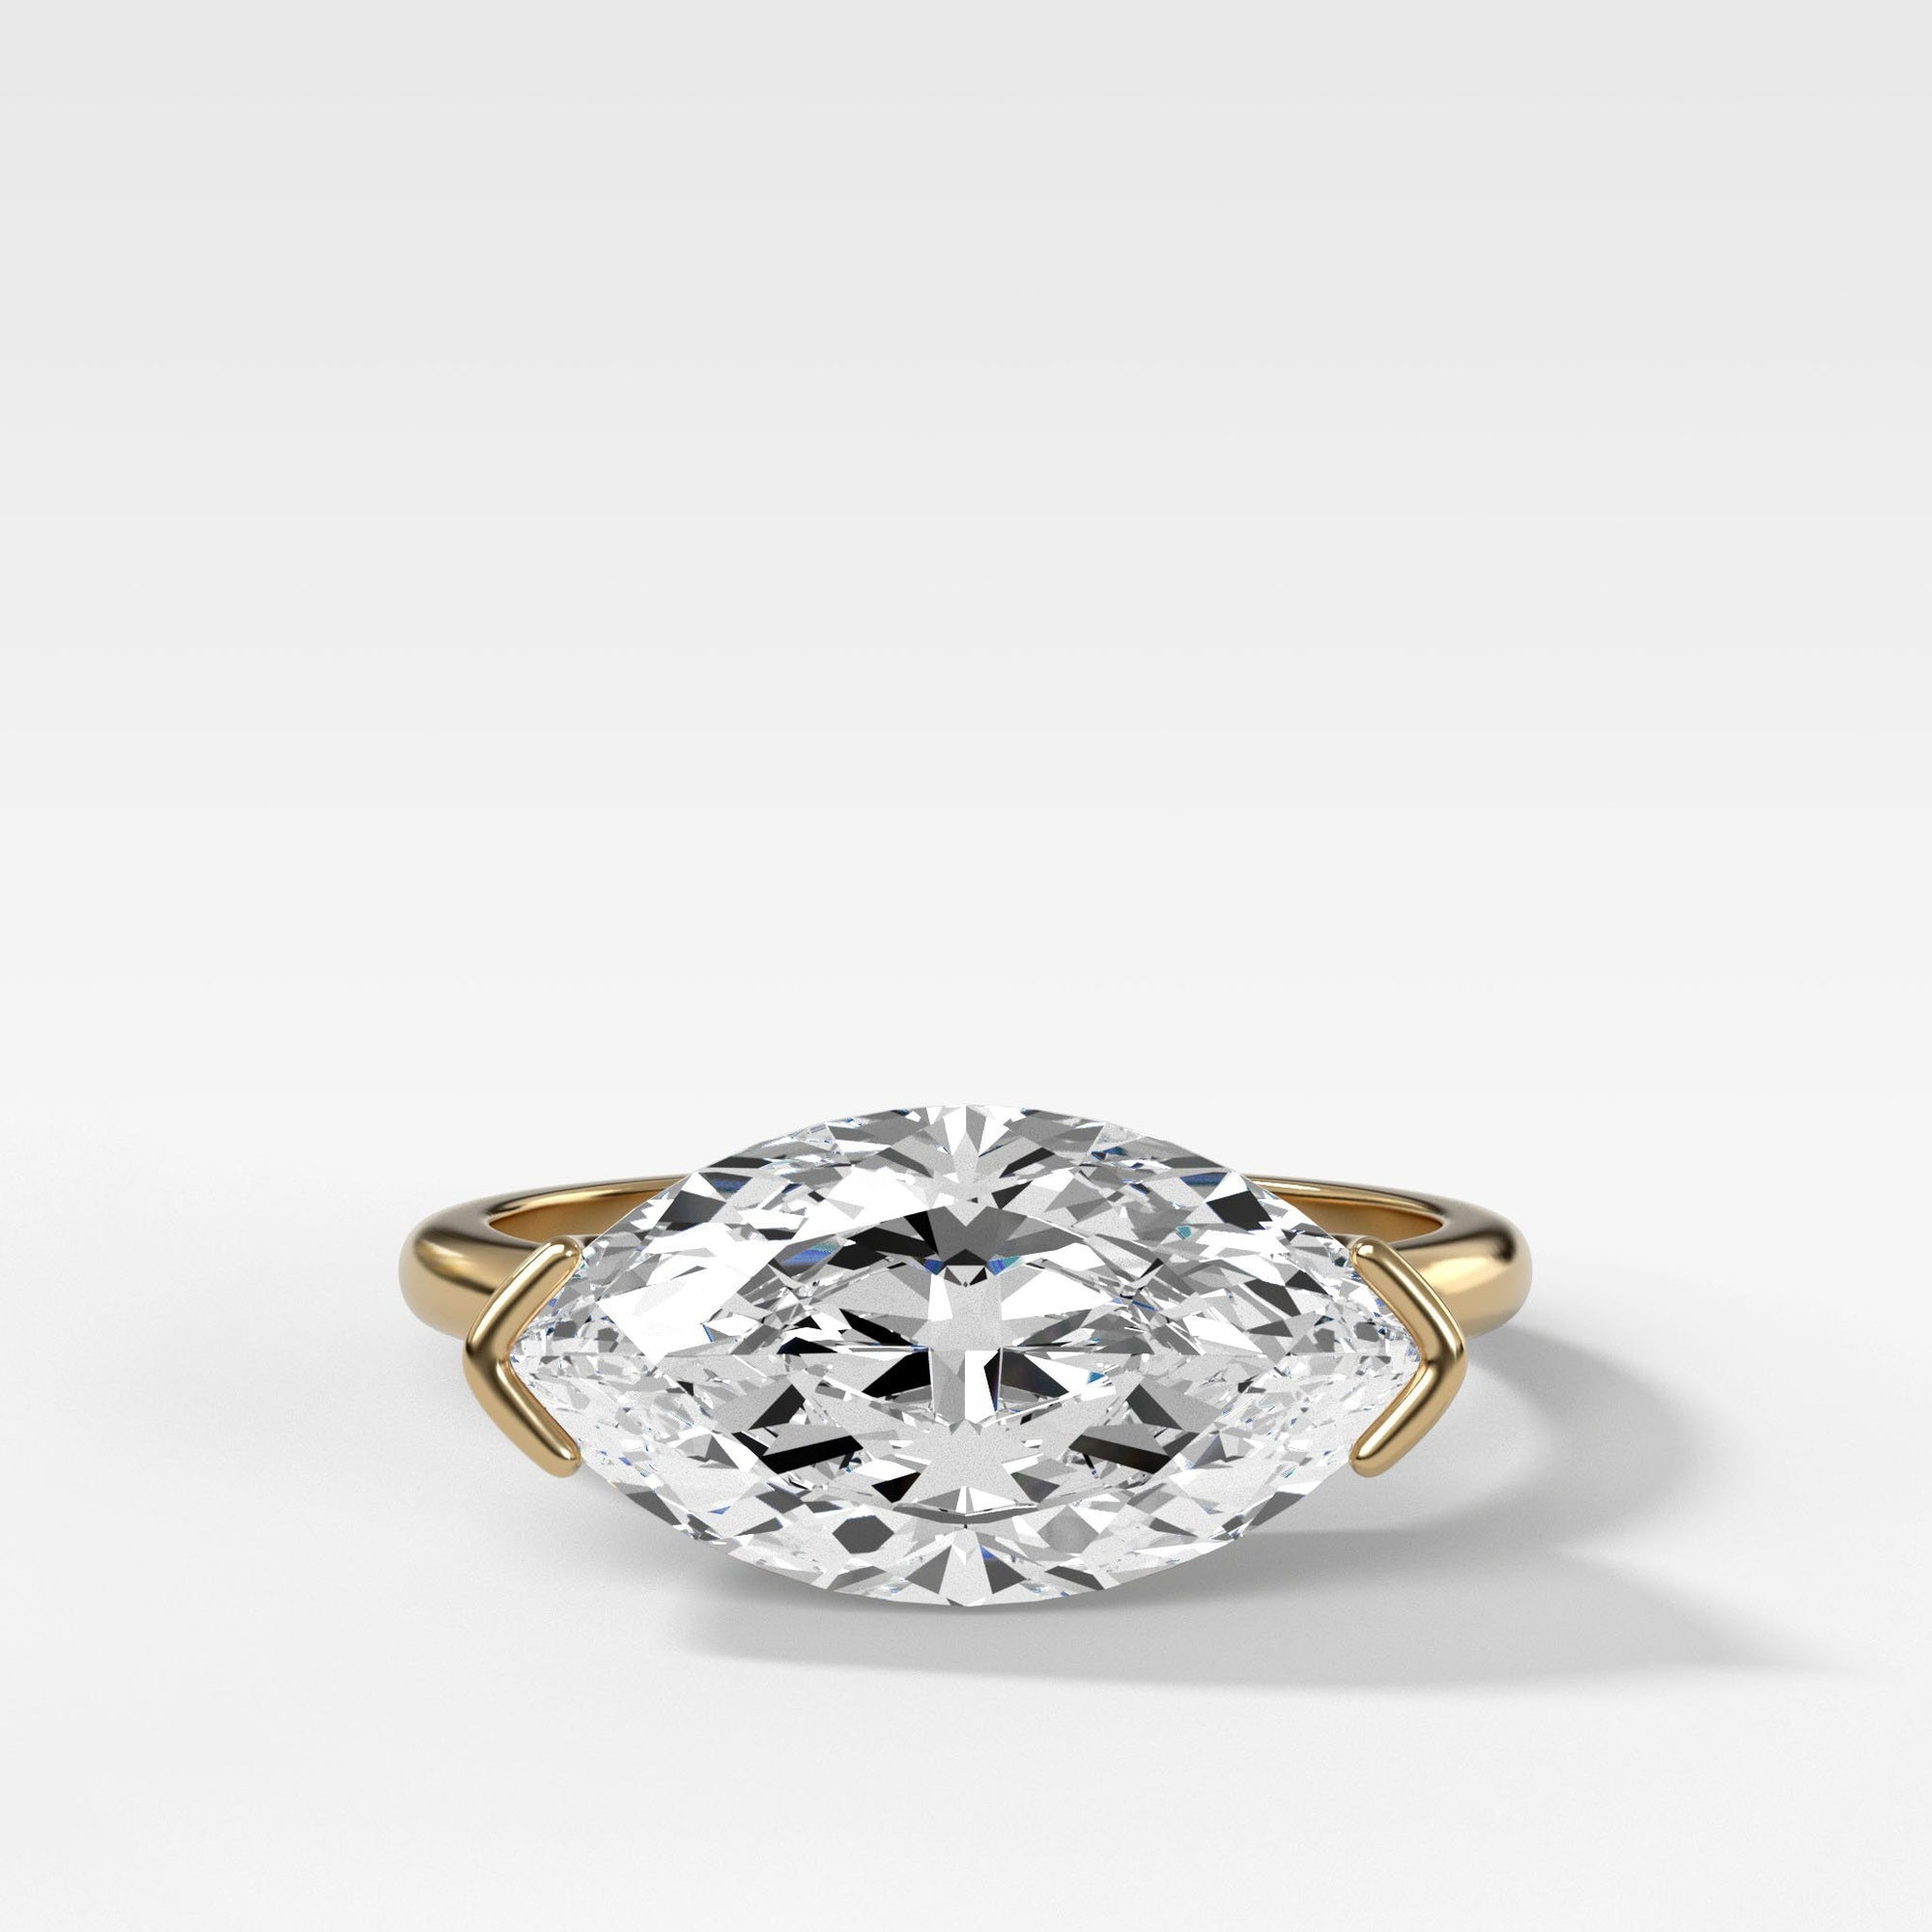 East West Half Bezel Solitaire Engagement Ring With Marquise Cut In Yellow Gold By Good Stone